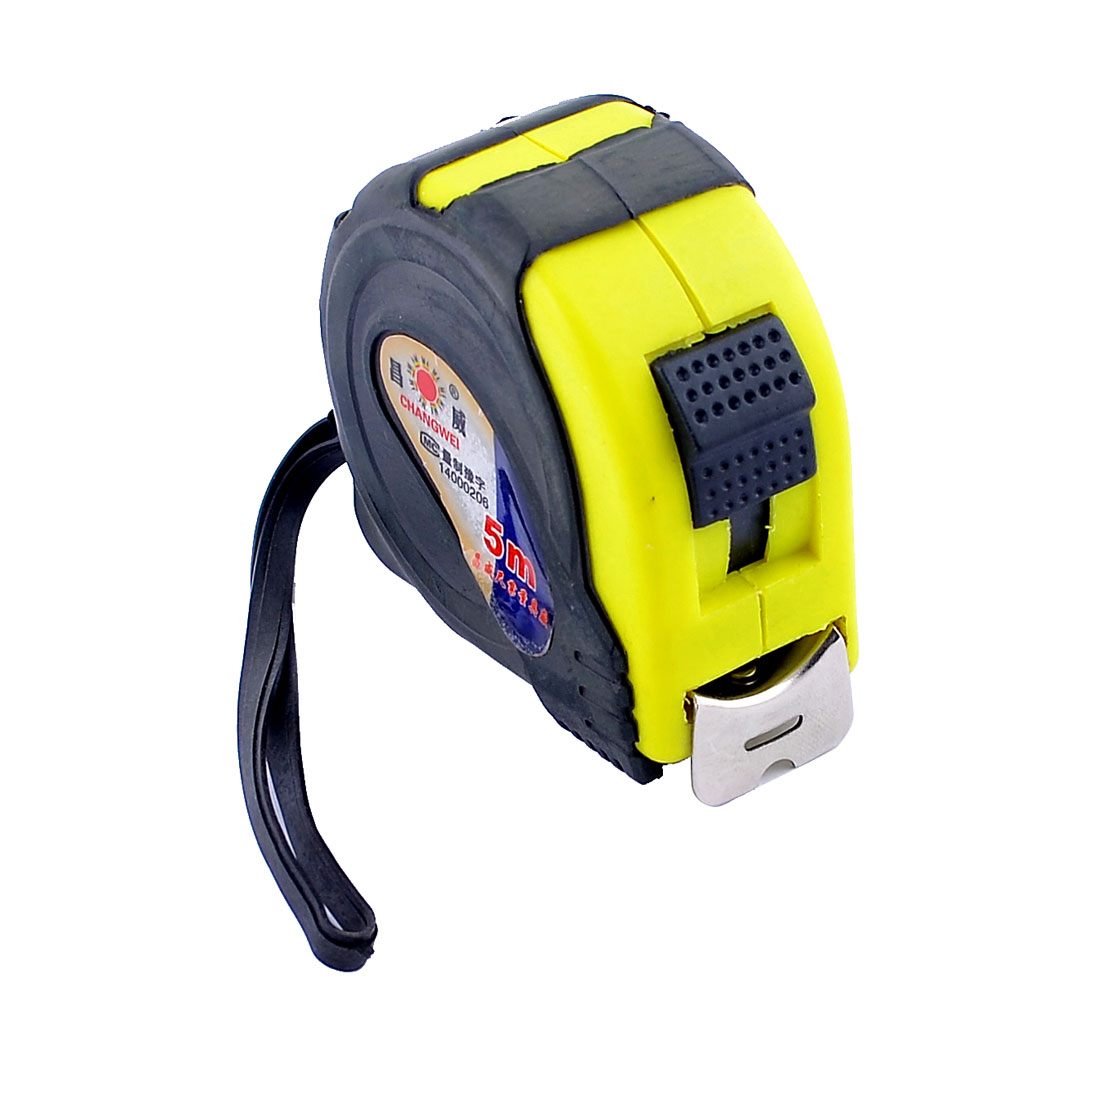 5M 16.4 Ft Length Automatically Retract Tape Measure Measuring